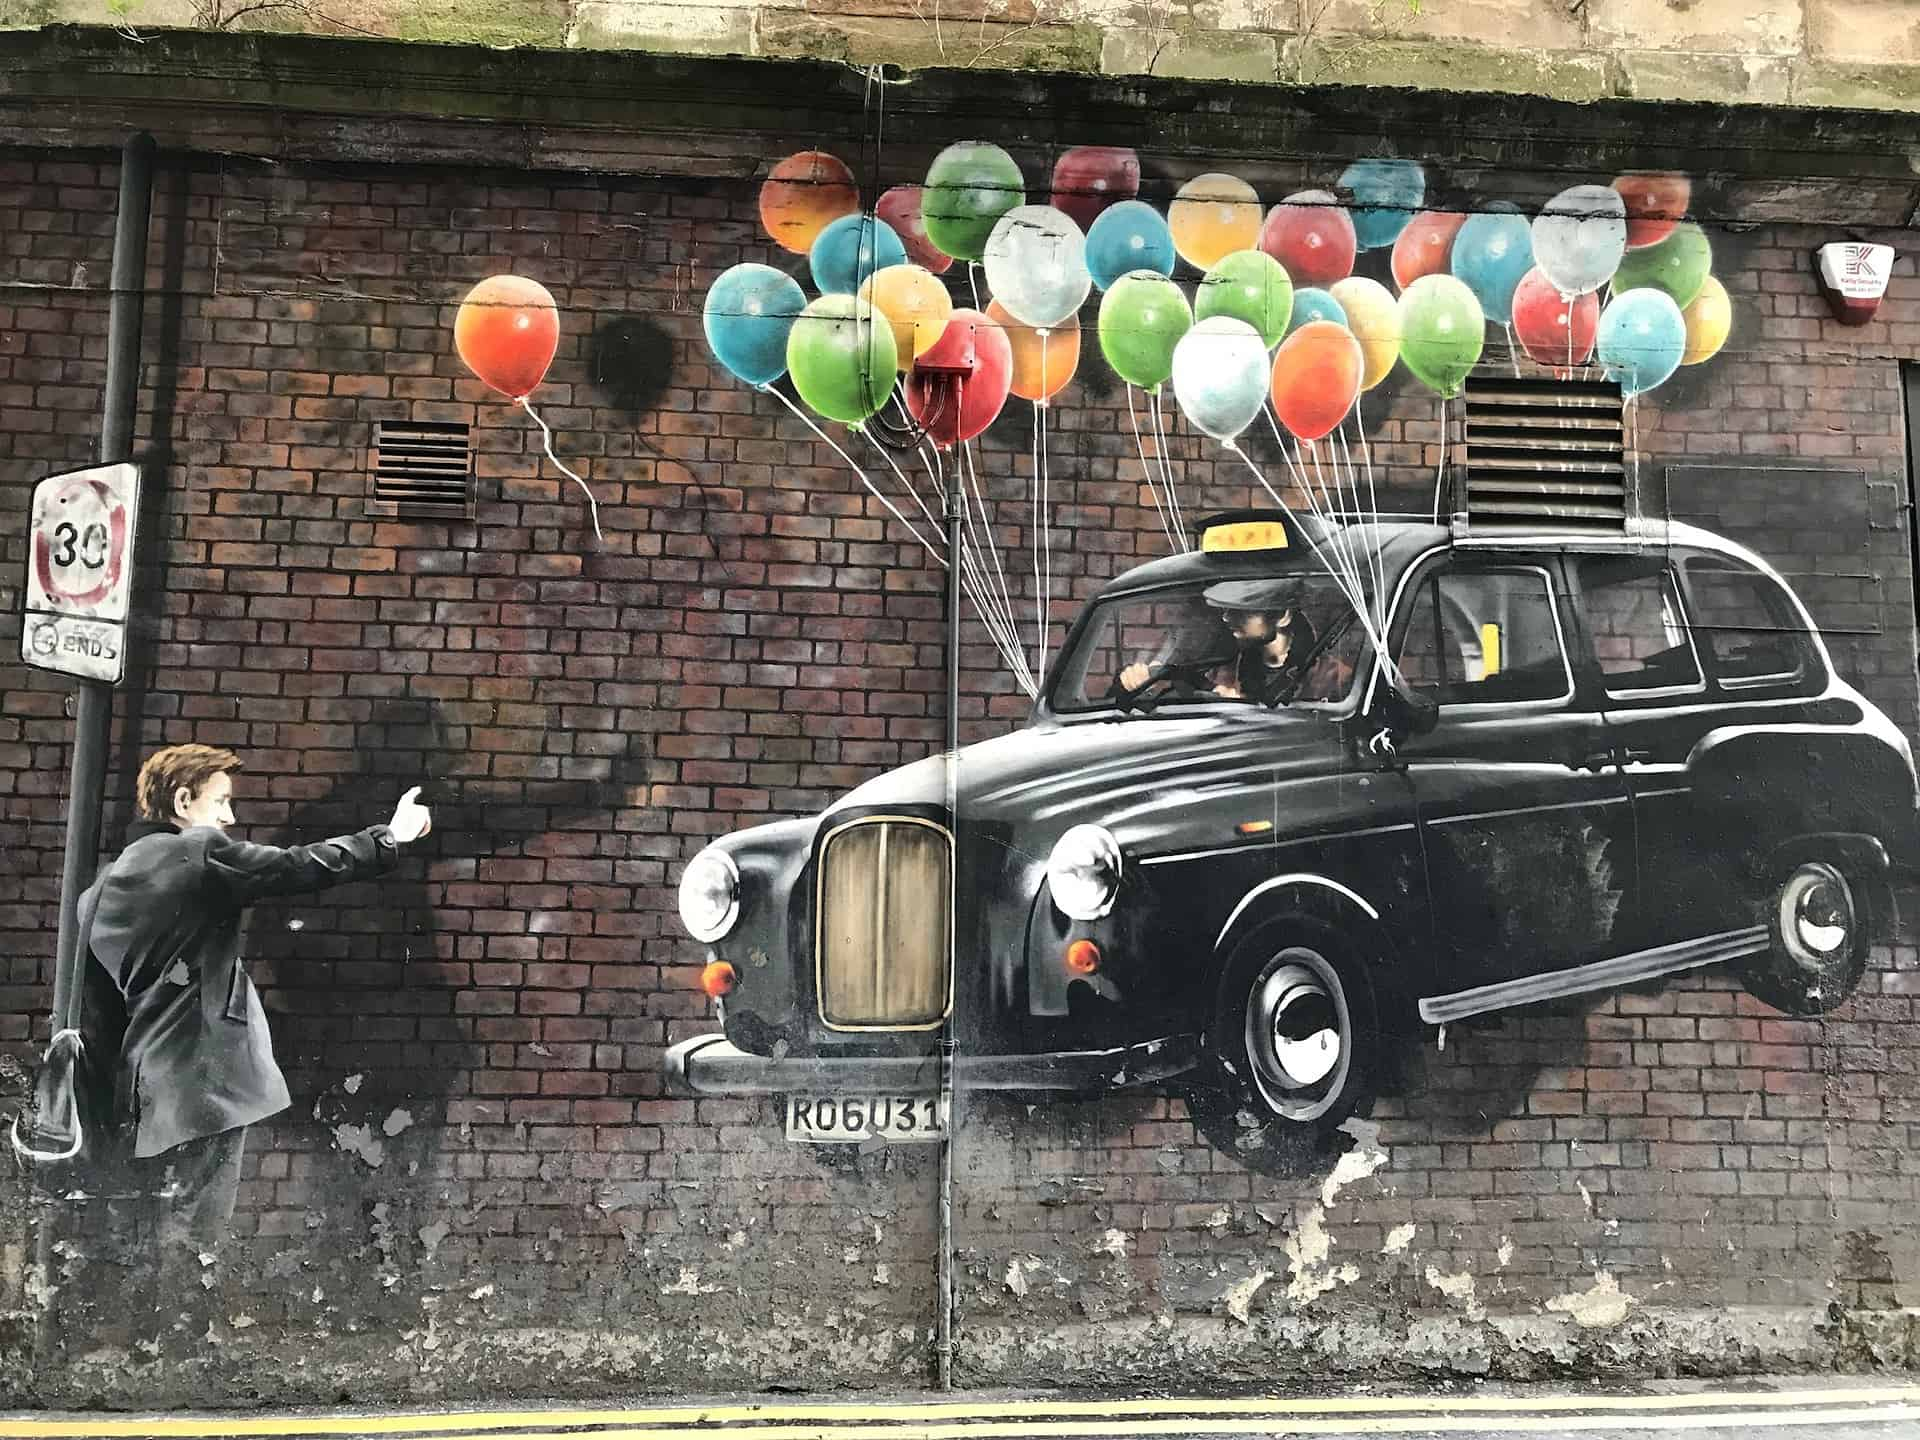 Scotland - Glasgow - Street Art - One week in Scotland road trip itinerary highlight